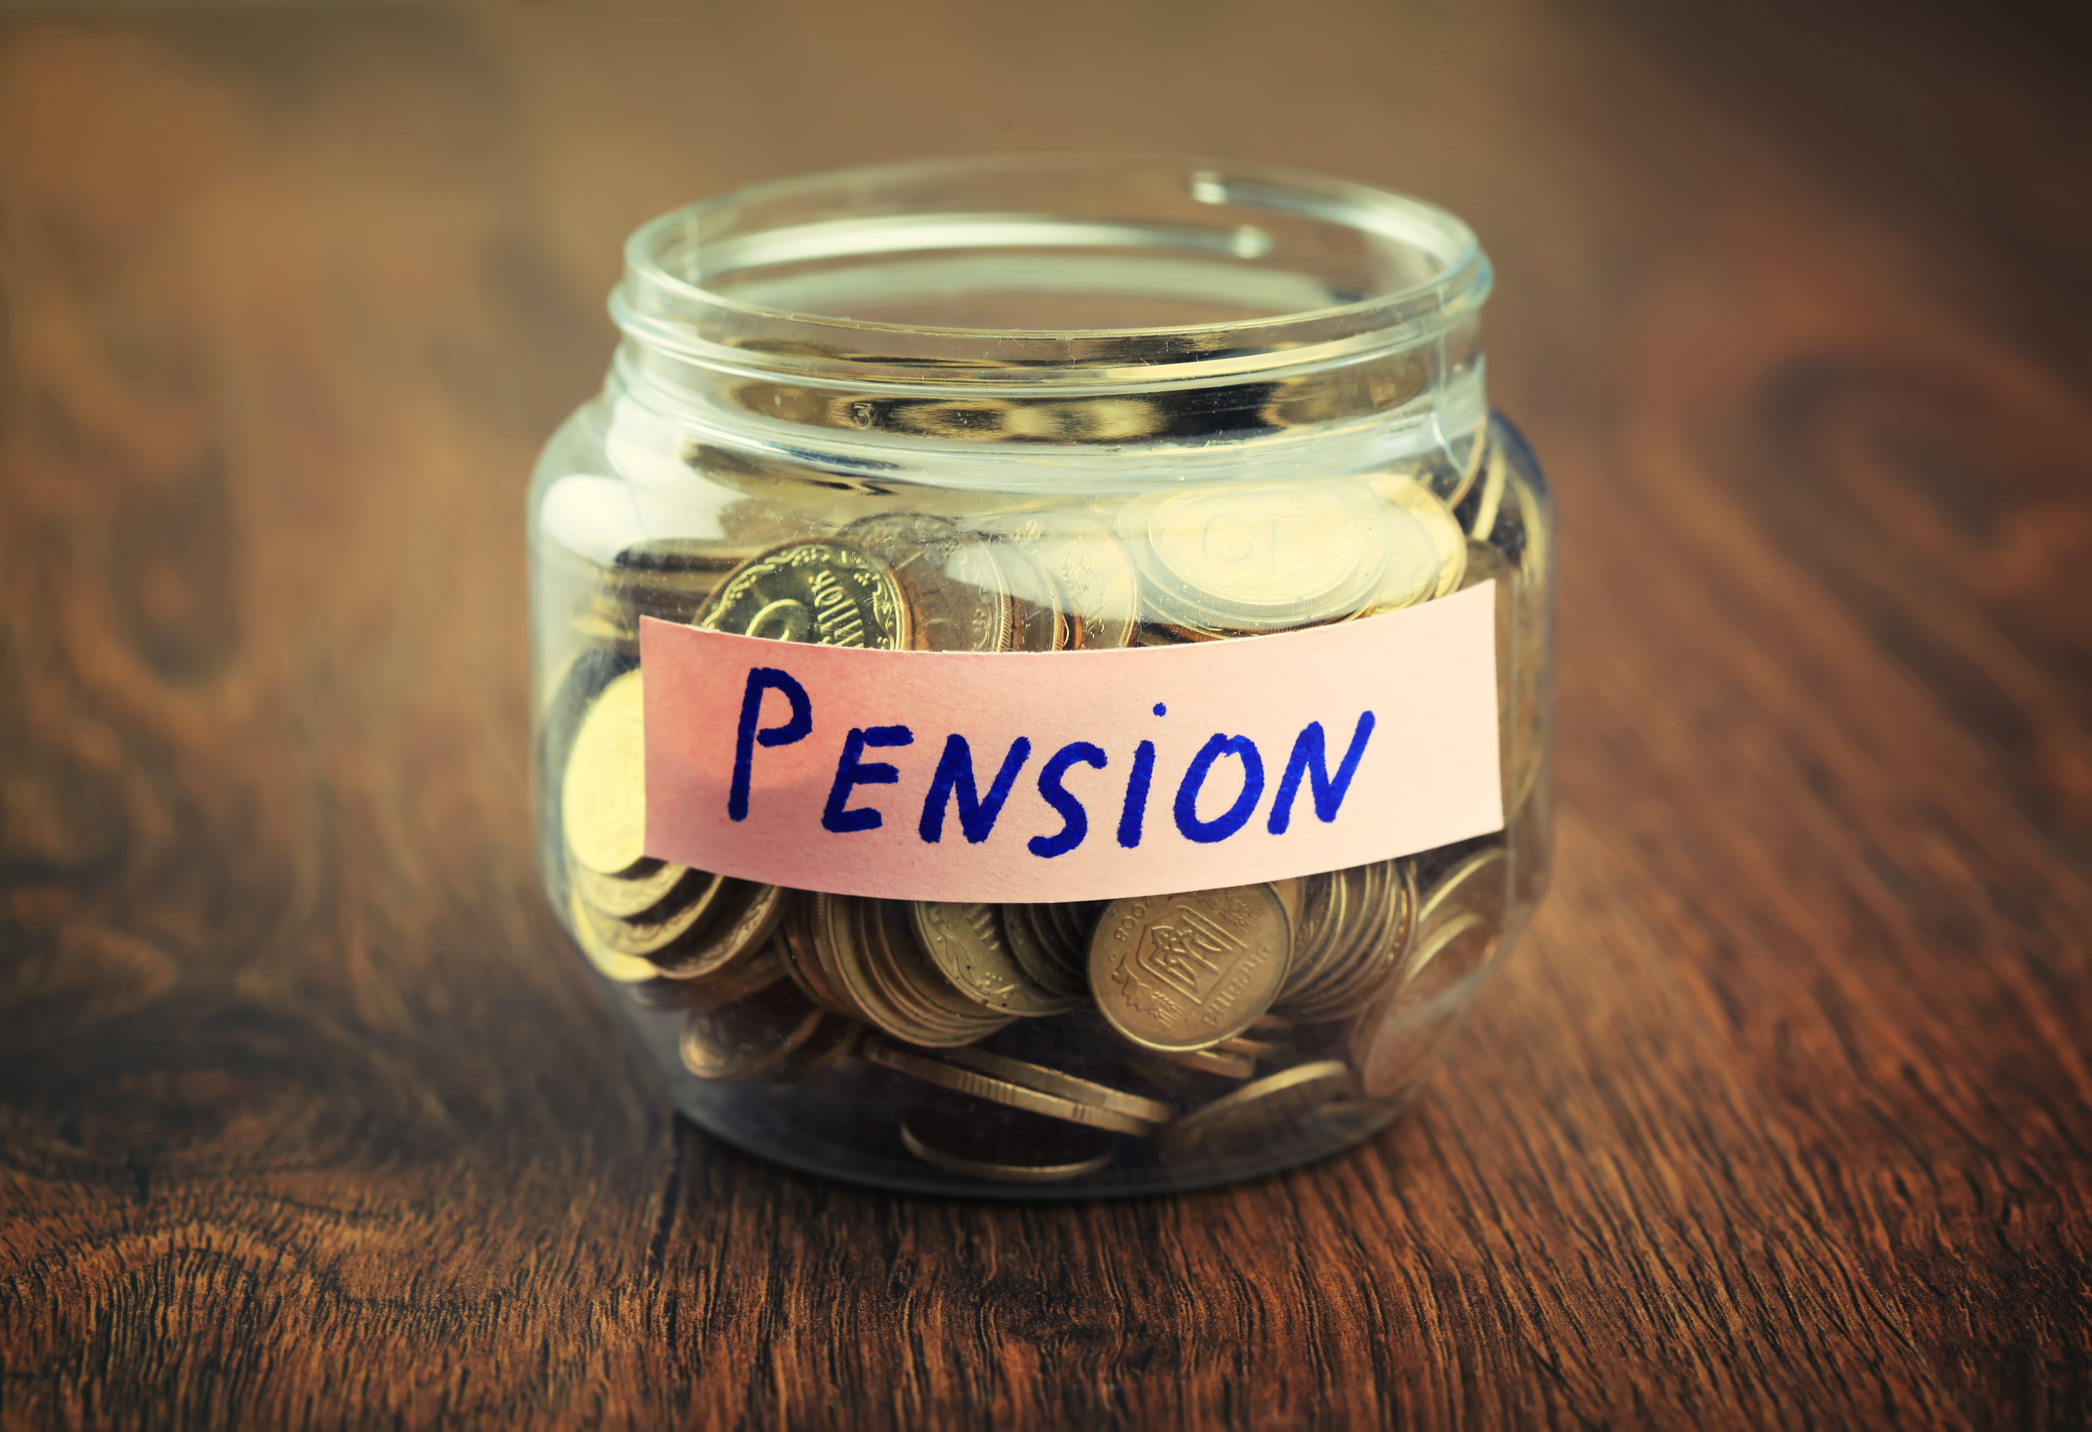 Pension Saving Jar